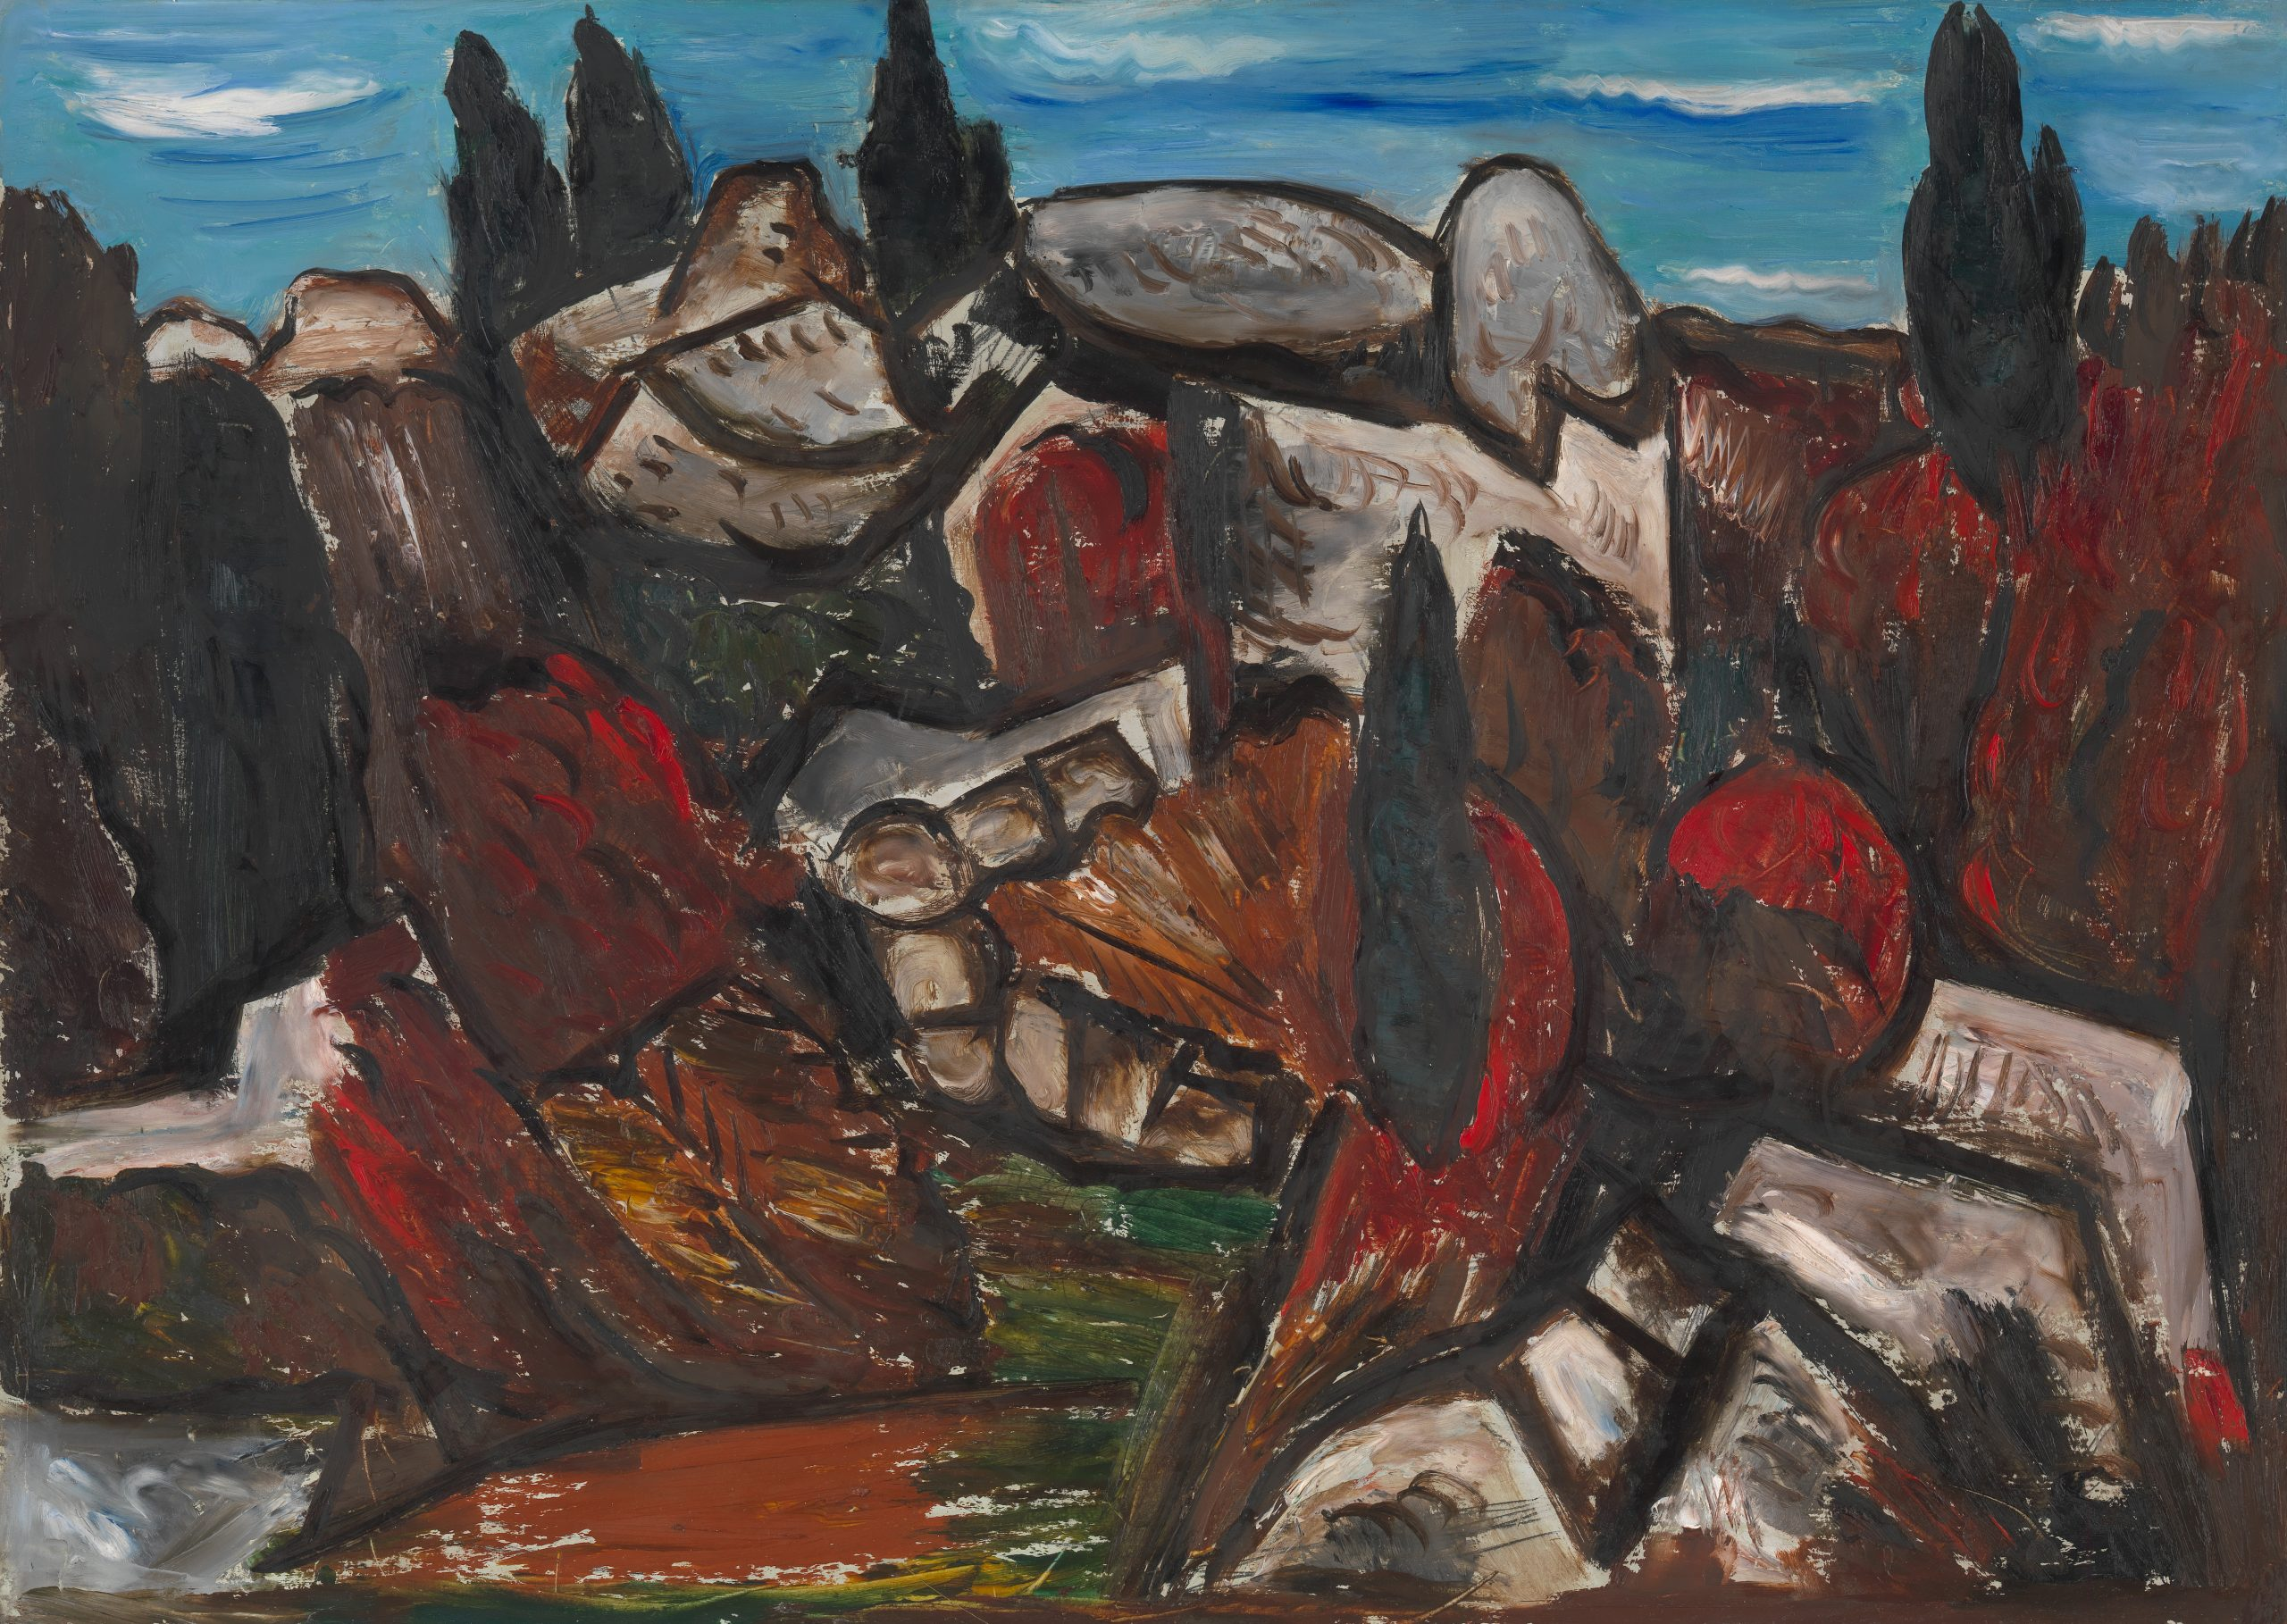 Hill of rugged rocks interplaced with a red and green thicket against a blue sky.